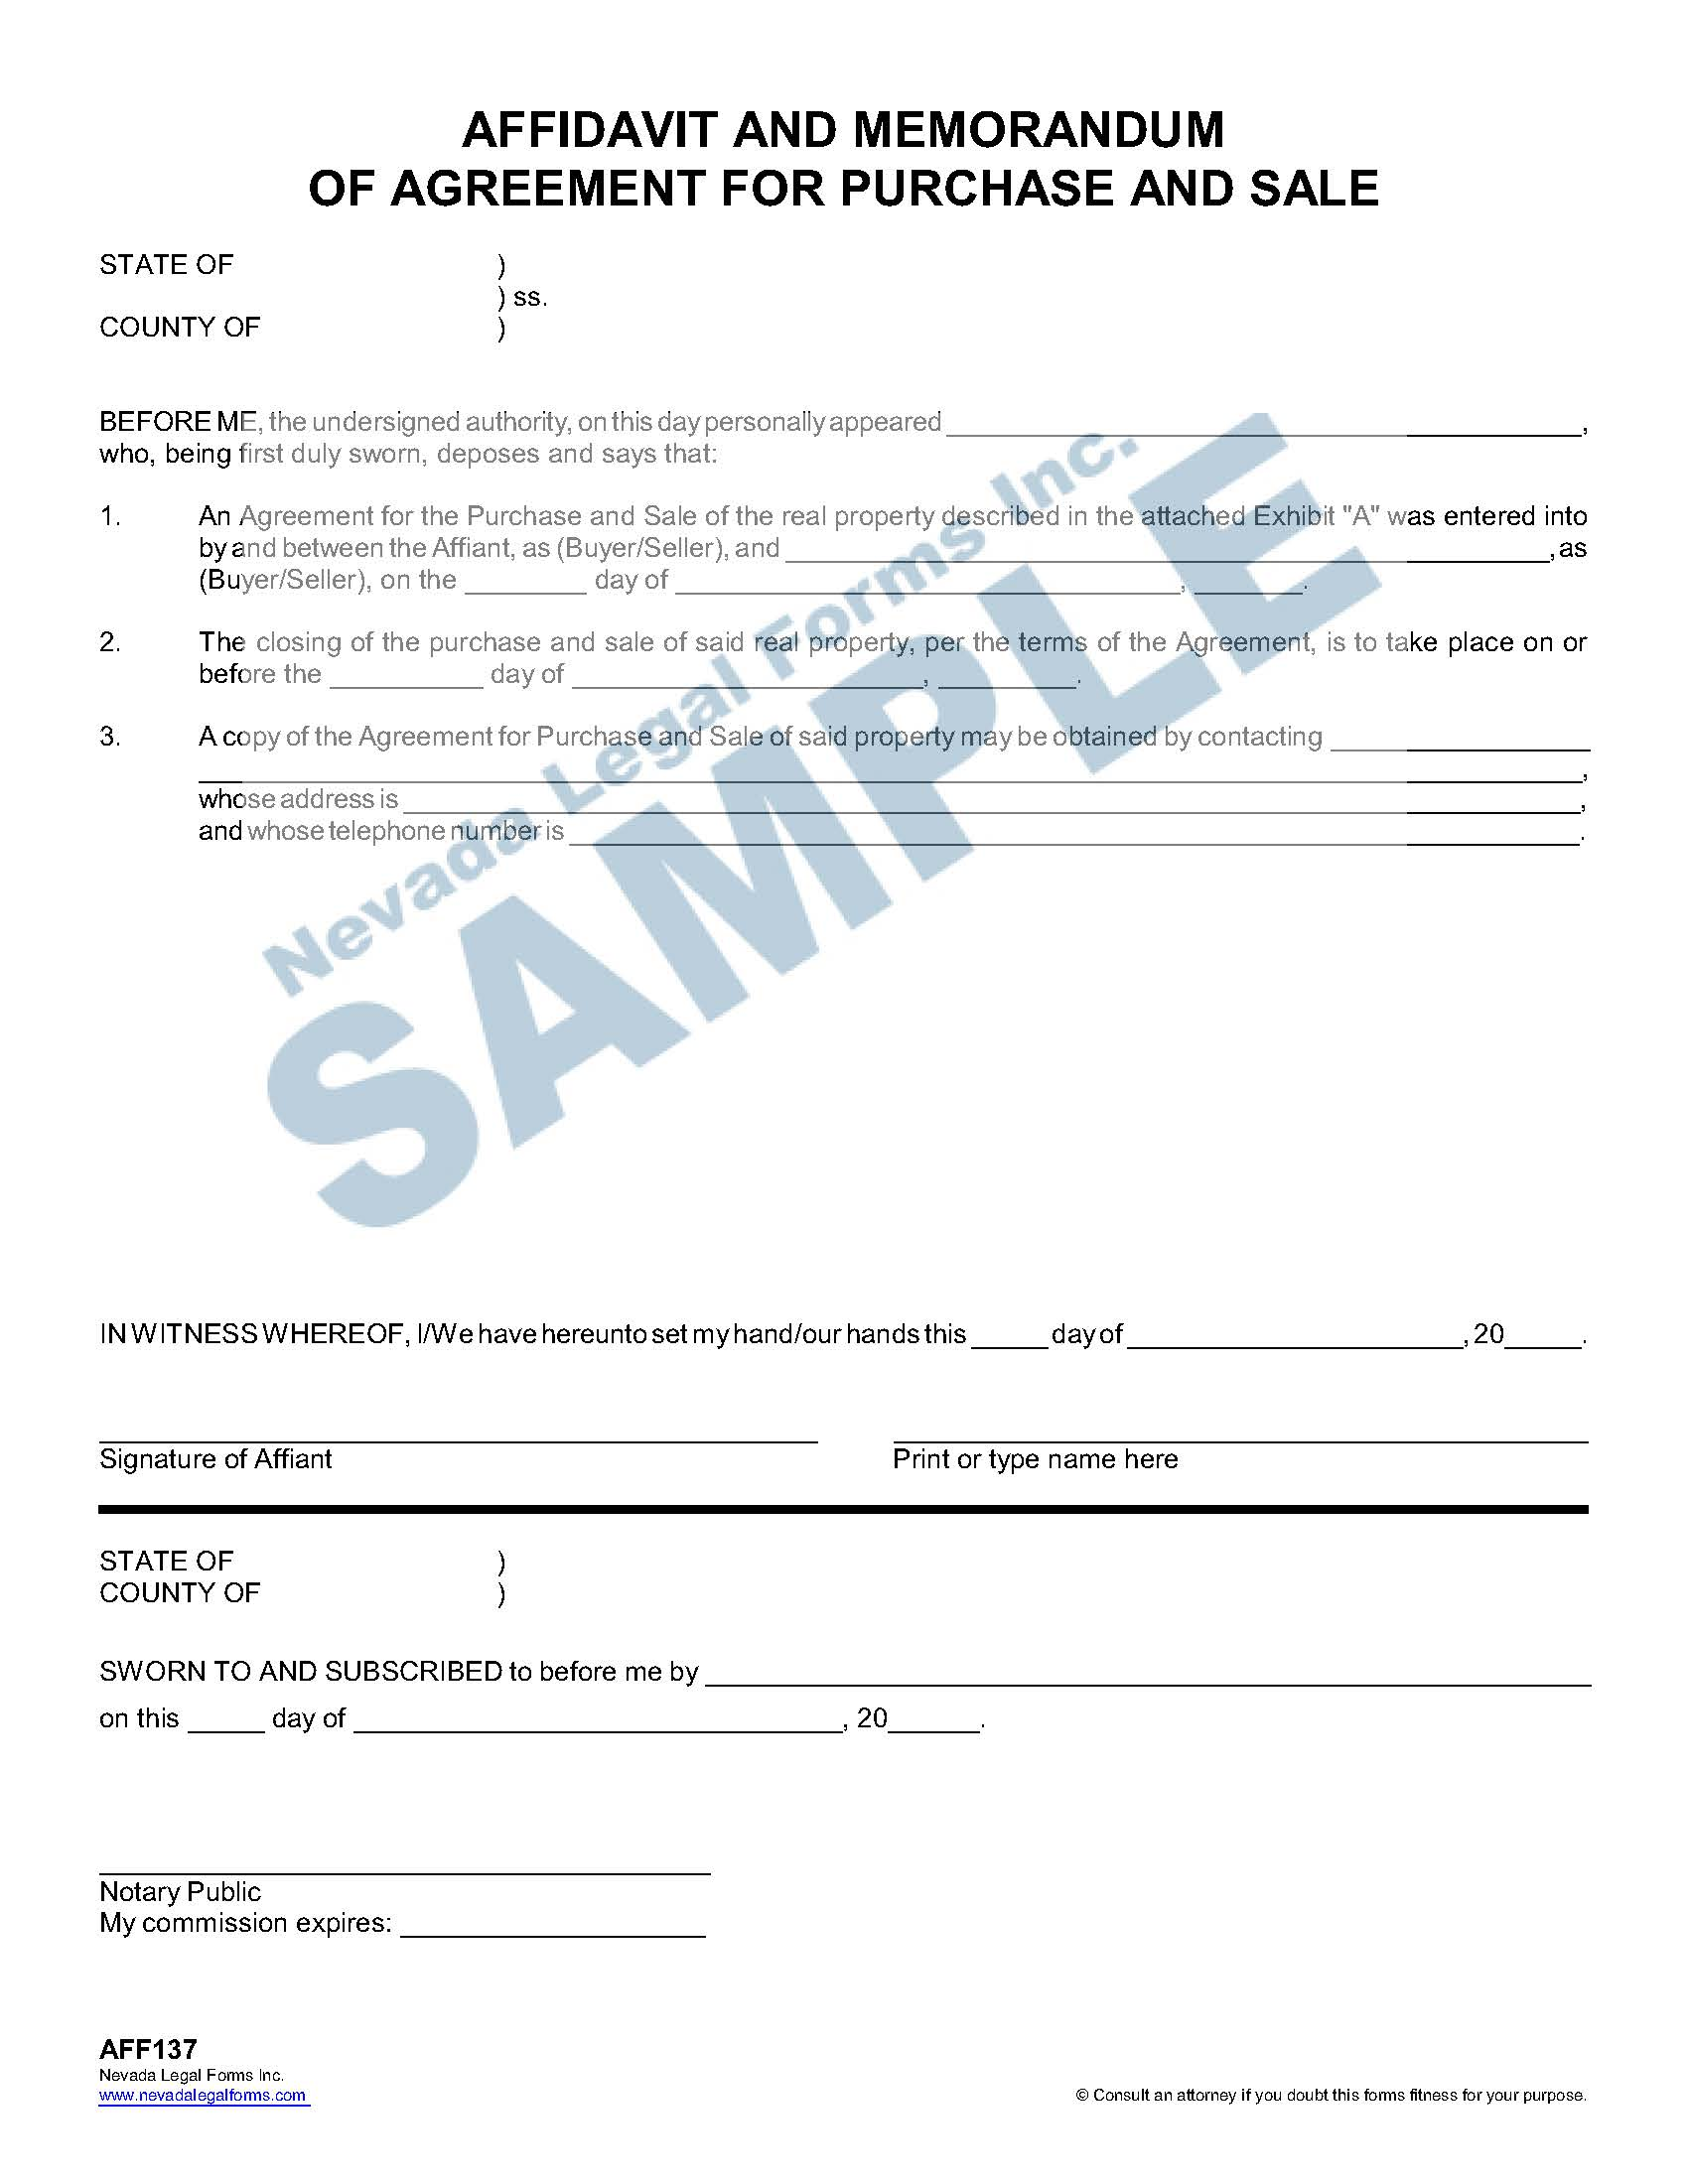 Affidavit And Memorandum Of Agreement For Purchase And